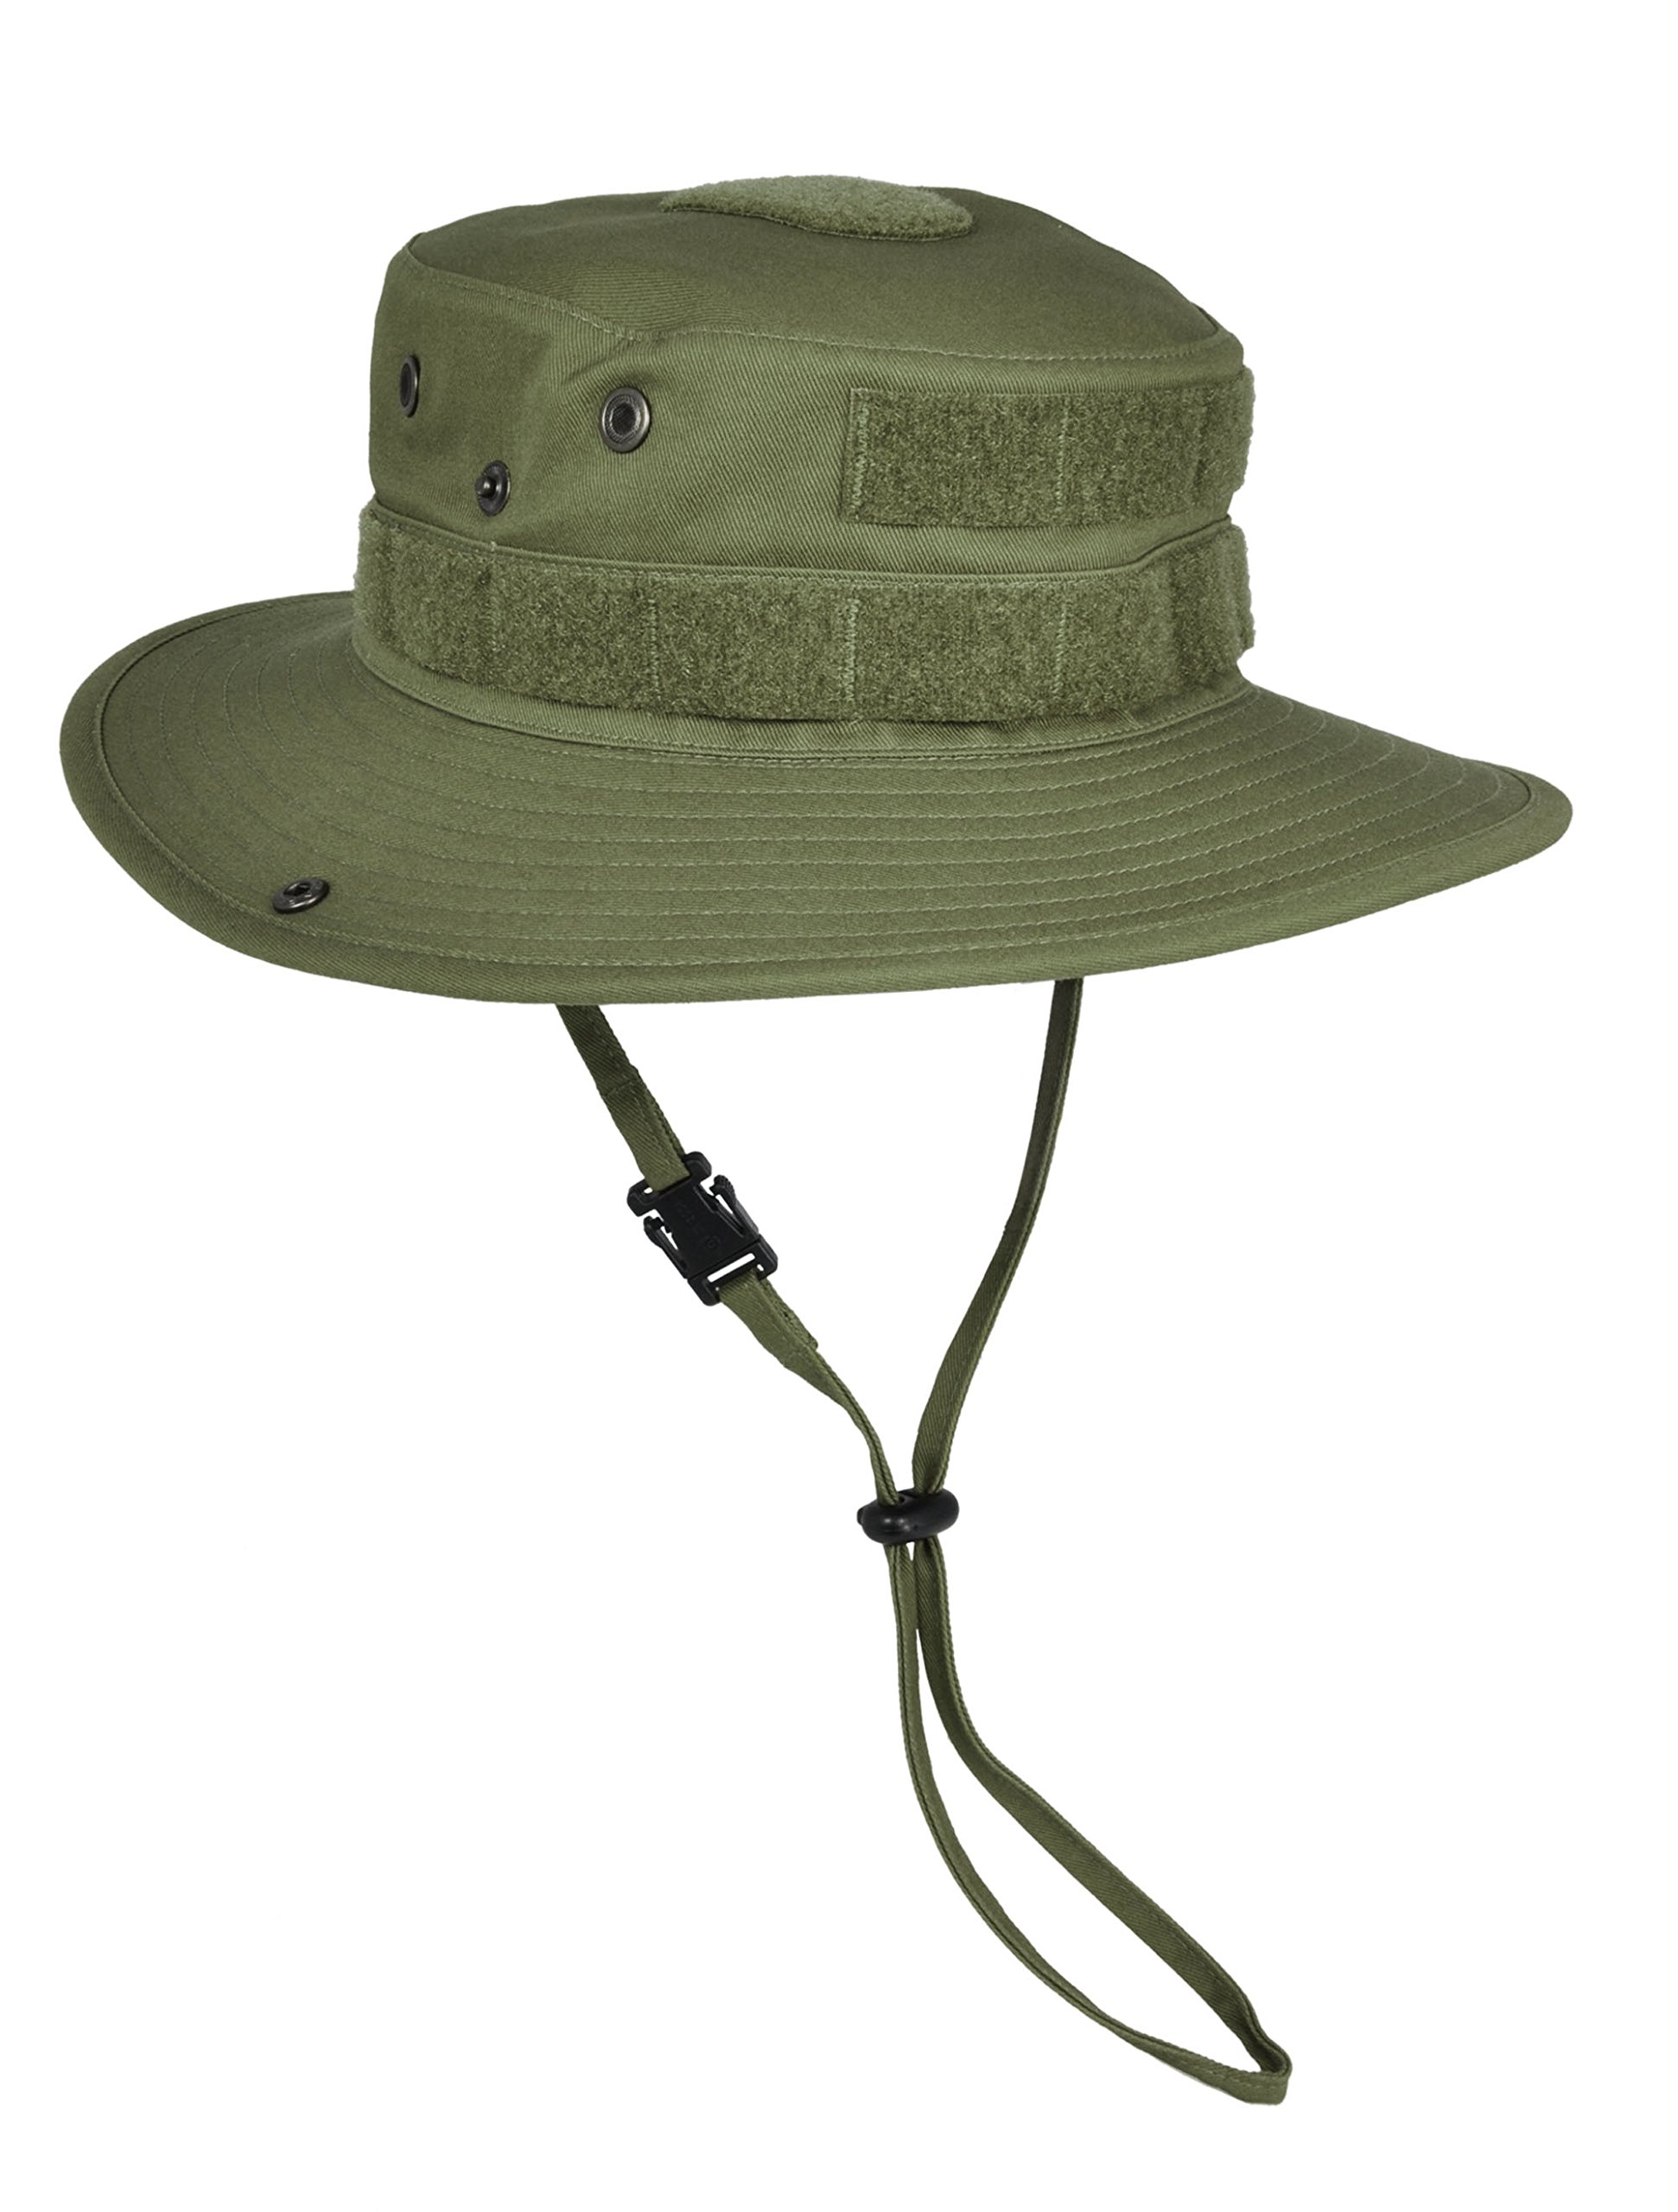 HAZARD 4 SunTac Cotton Boonie Hat with Molle, OD Green, Large